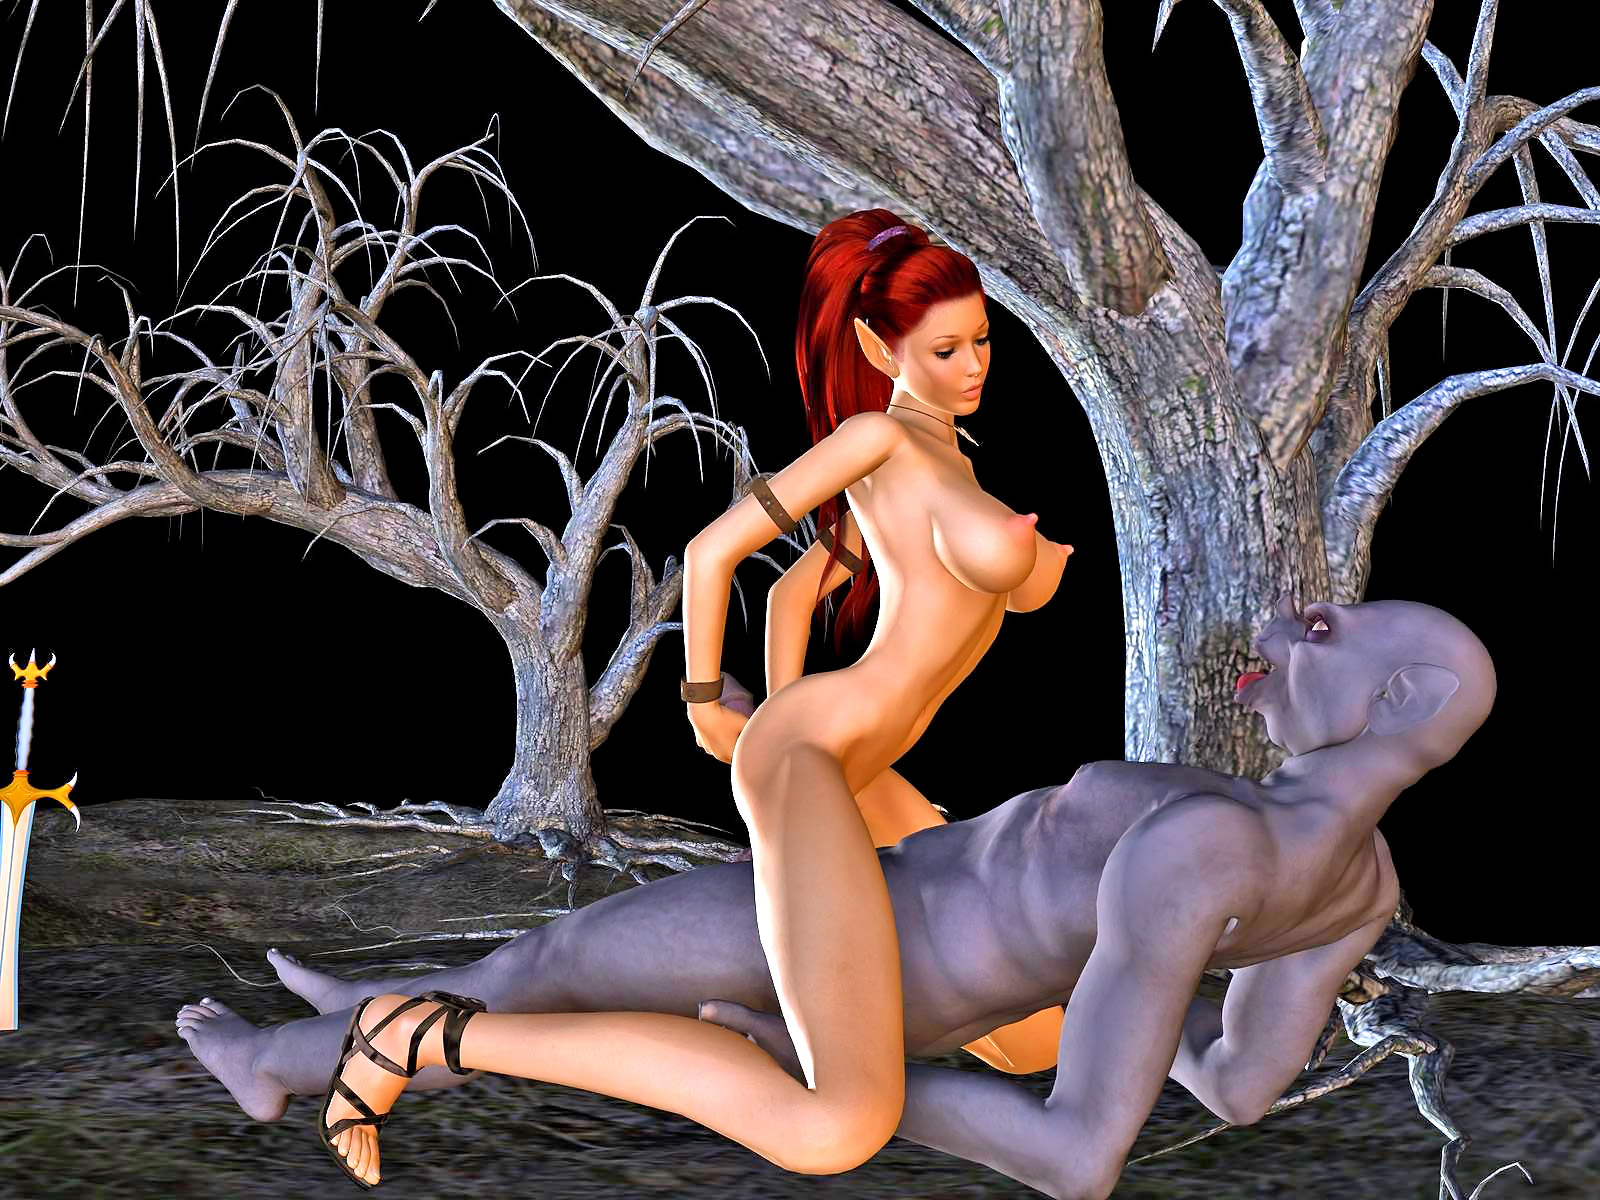 Toon vampire sex pics xxx photo